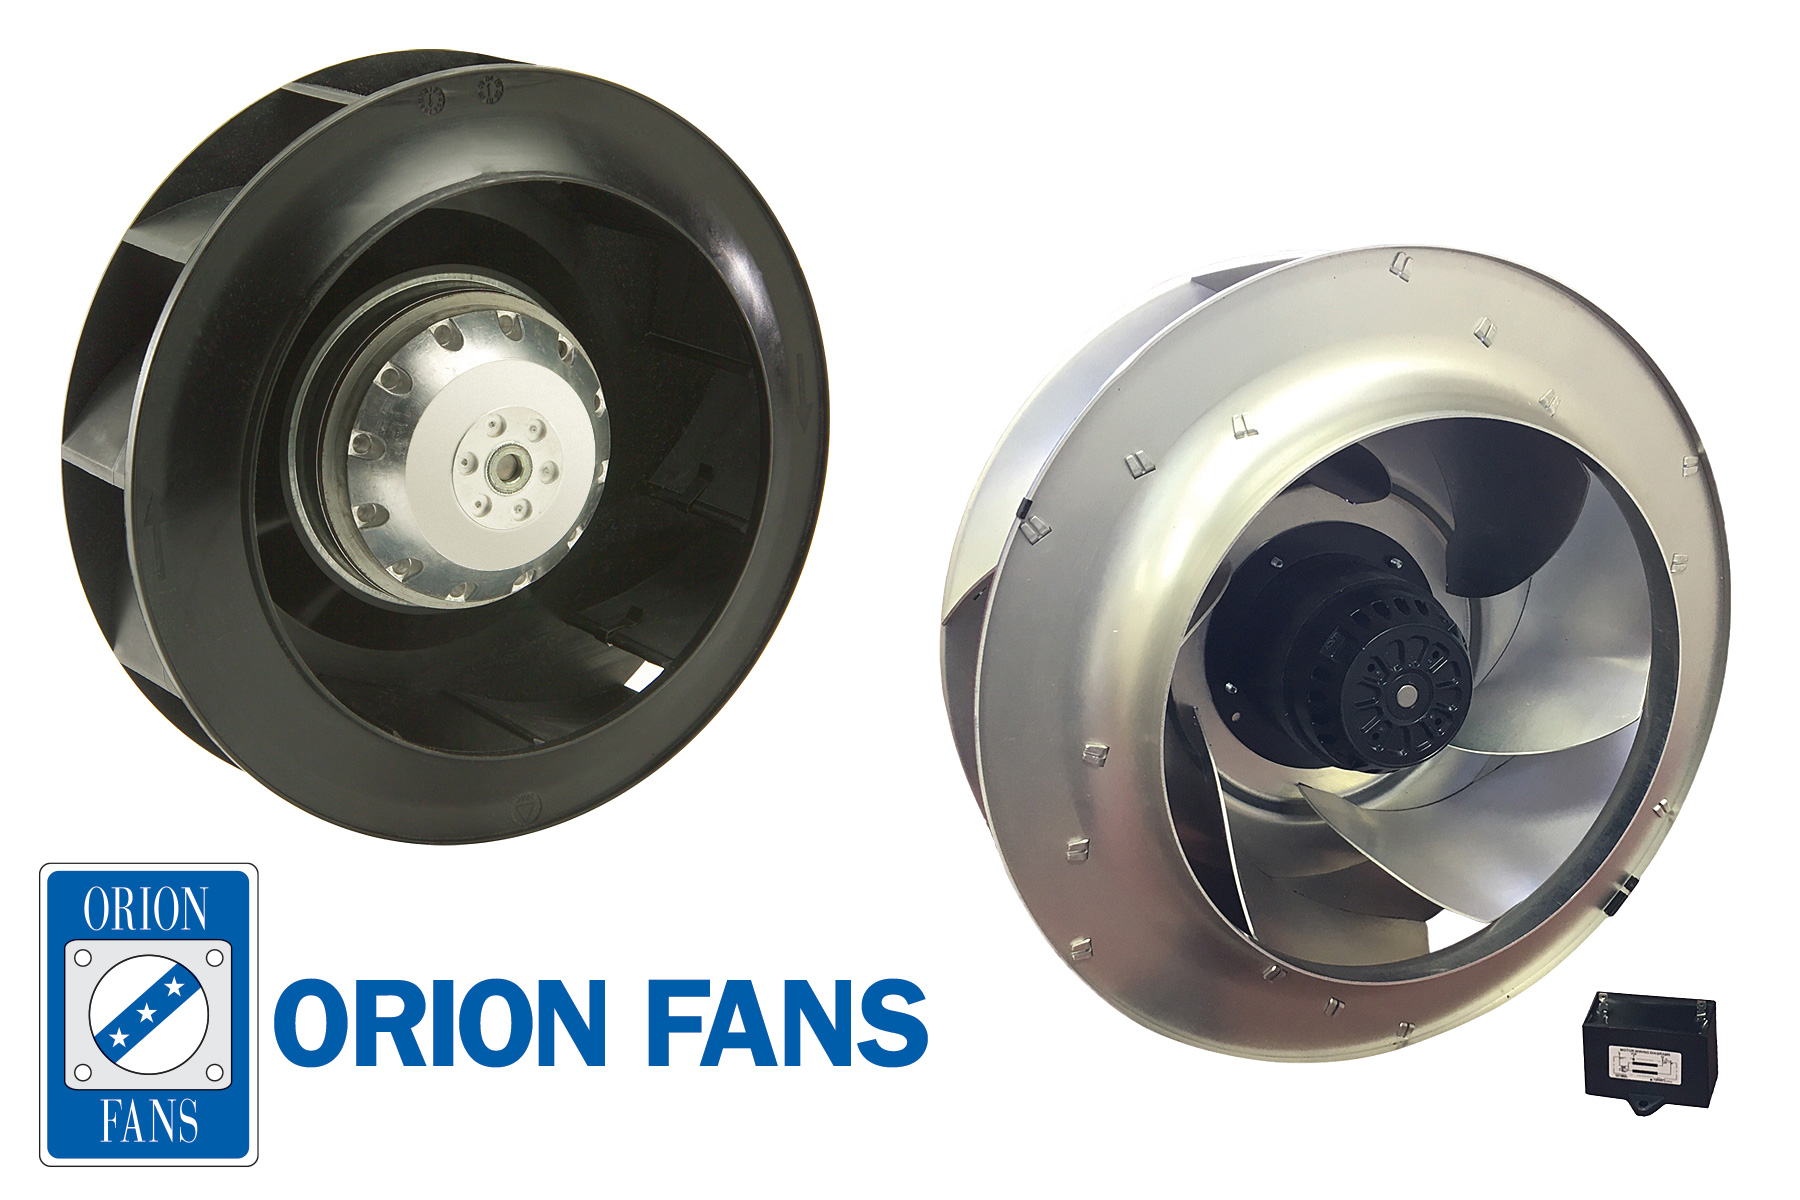 Orion Fans Expands AC Motorized Impellers Family & Adds New DC Motorized Impeller Line